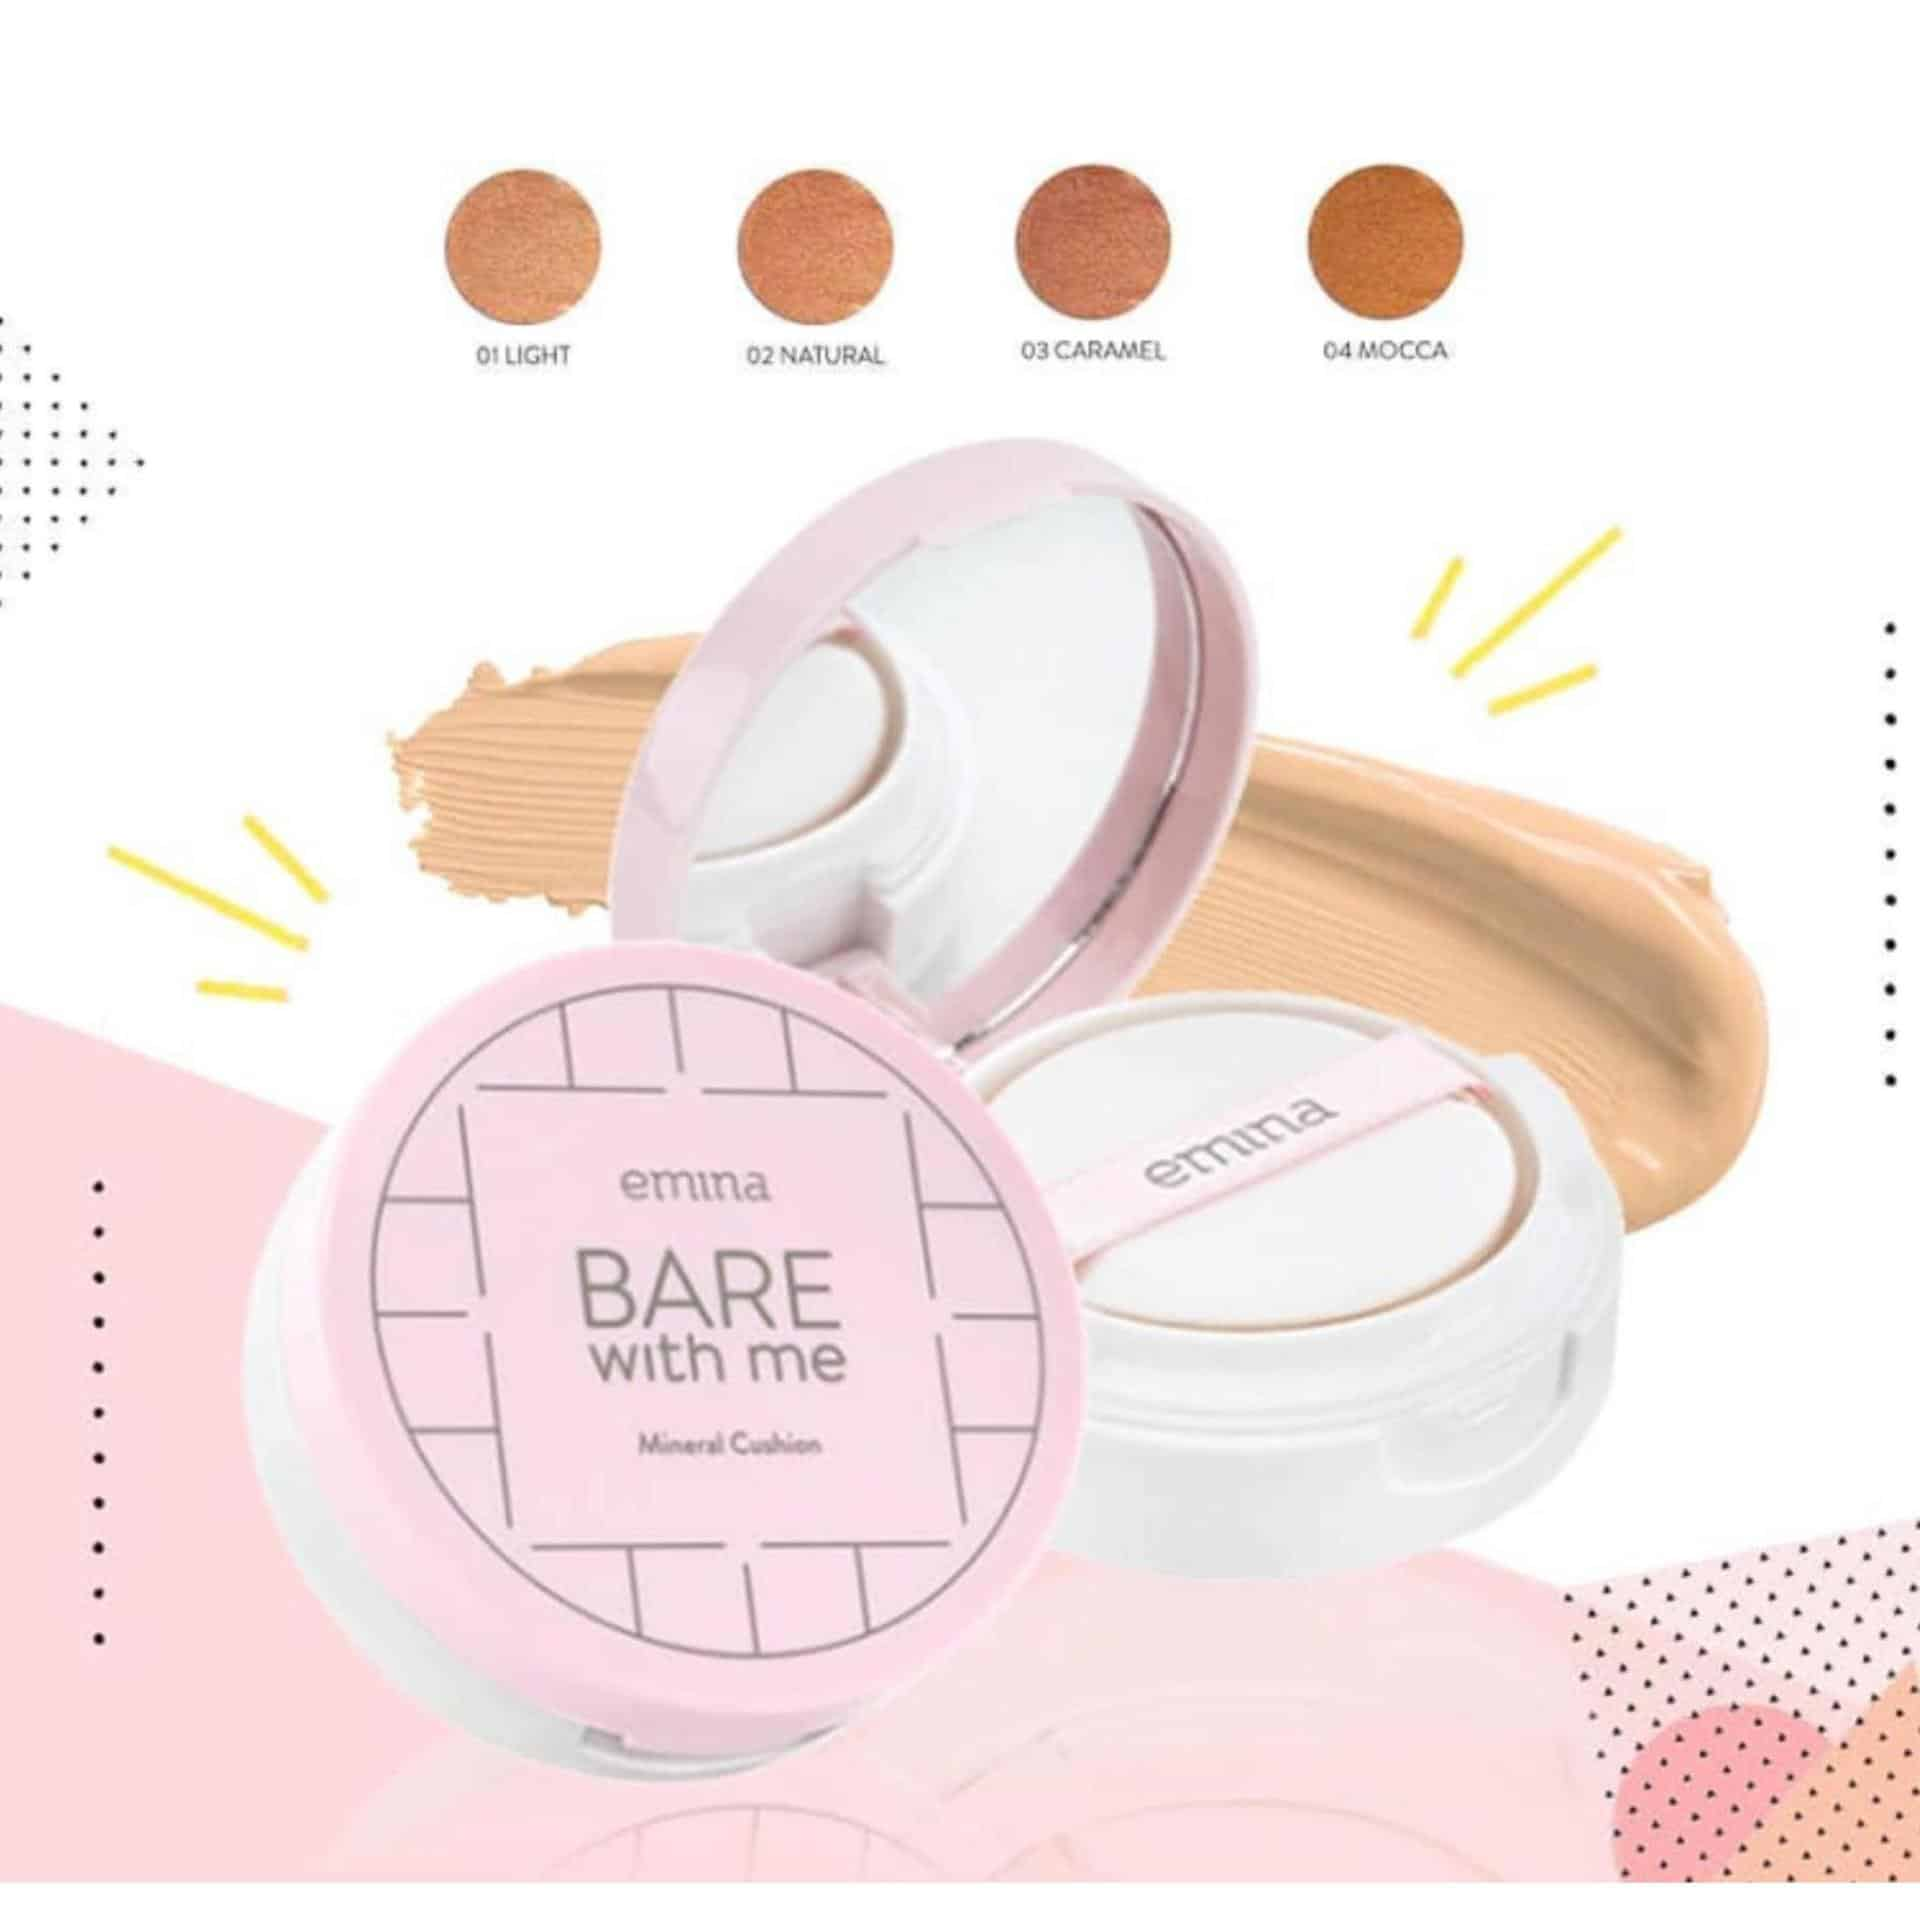 Emina-Bare-With-Me-Mineral-Cushion